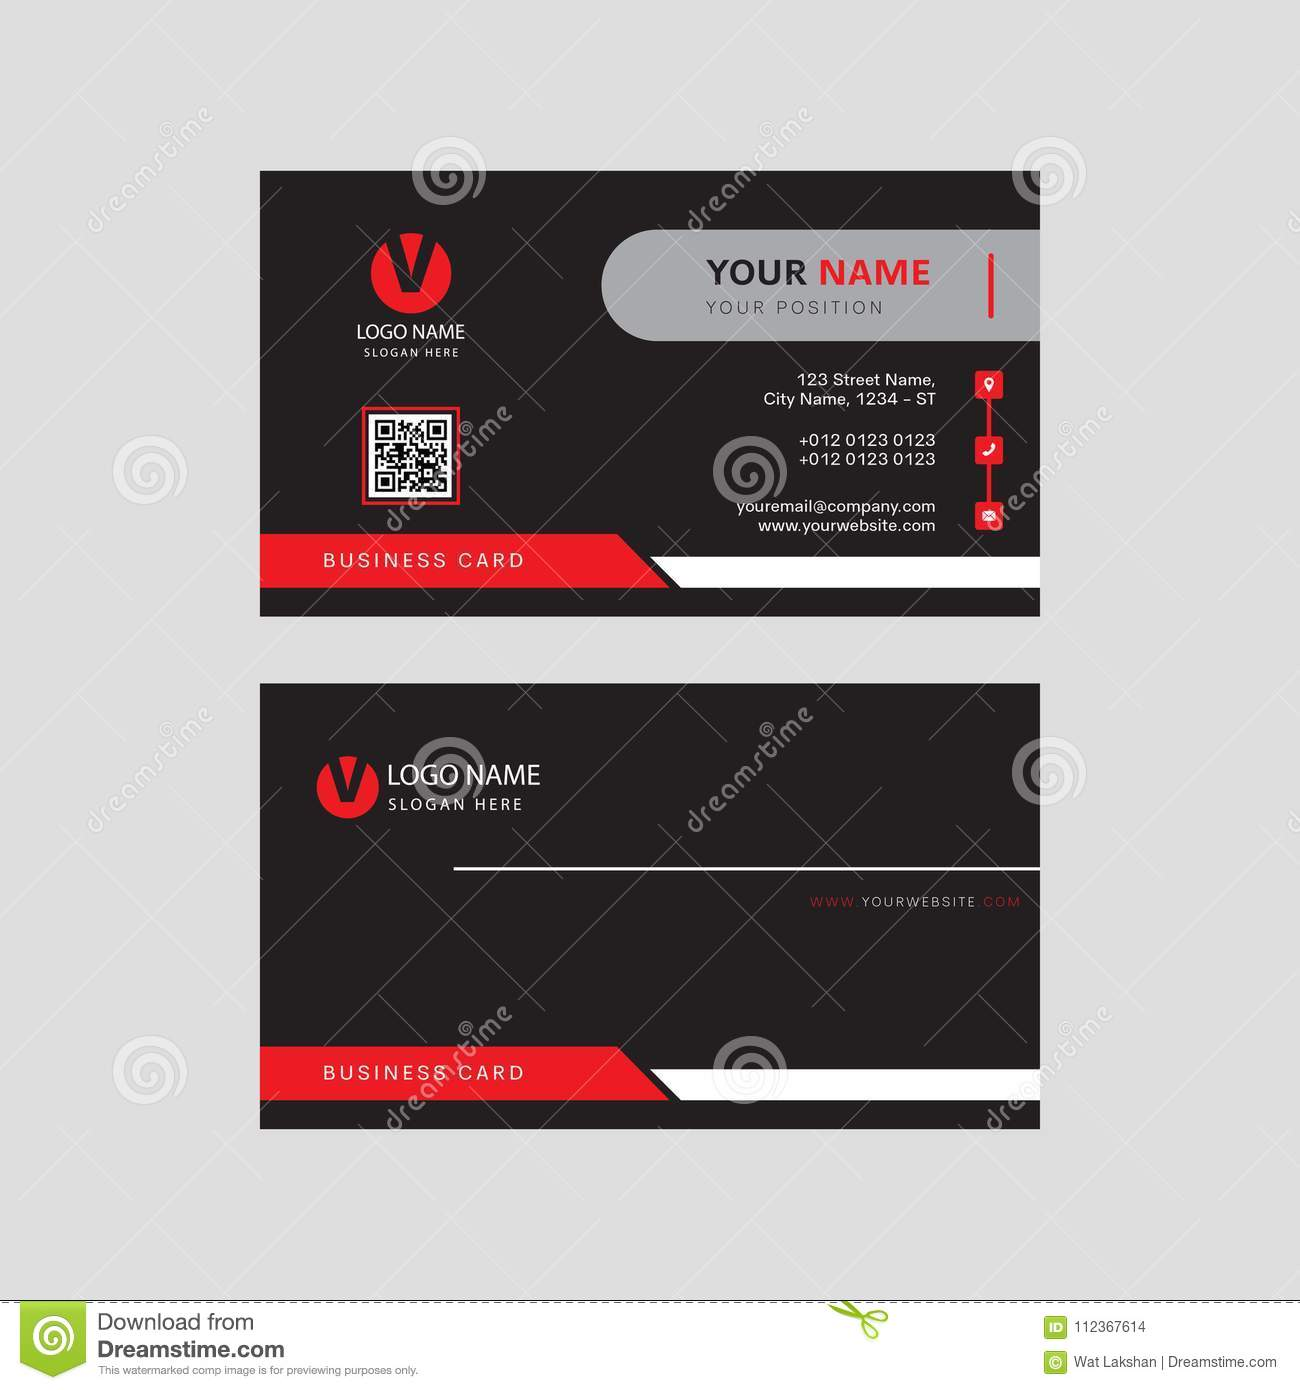 Modern professional eye catching business card design visiting card modern professional eye catching business card design visiting card template design flashek Choice Image